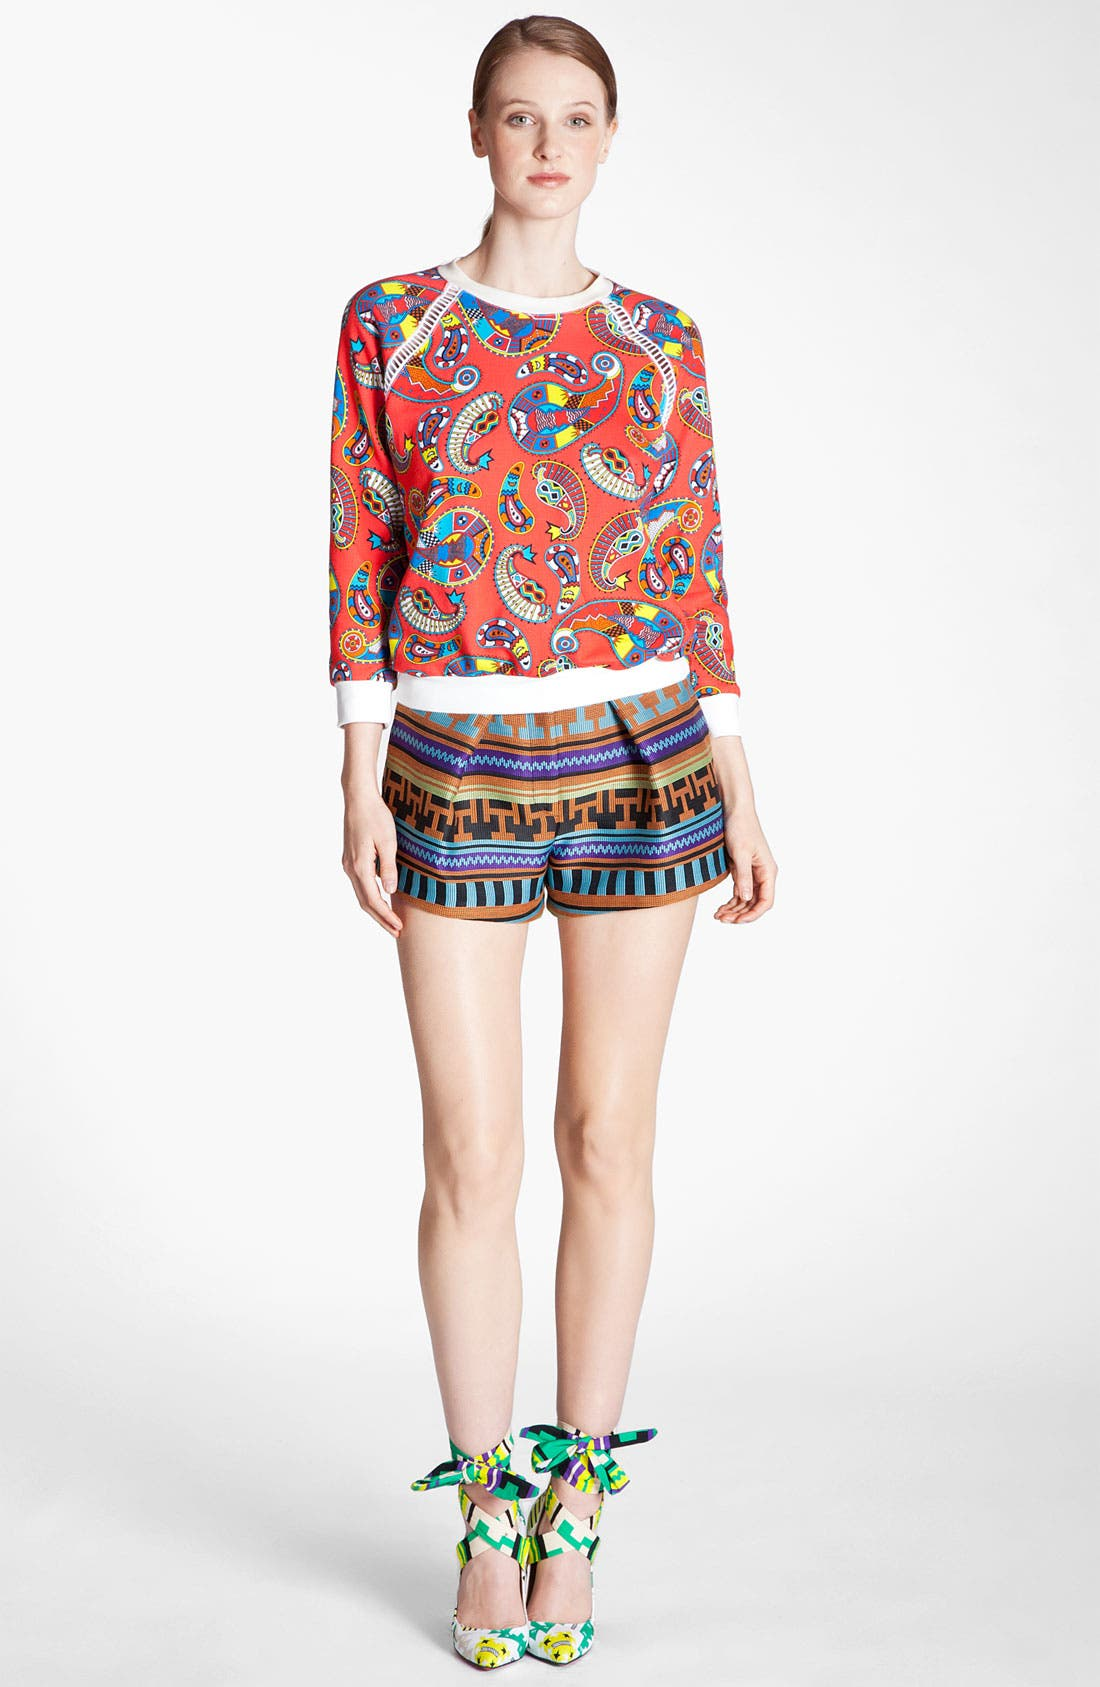 Alternate Image 1 Selected - MSGM 'Paisley Memphis Print' Sweatshirt